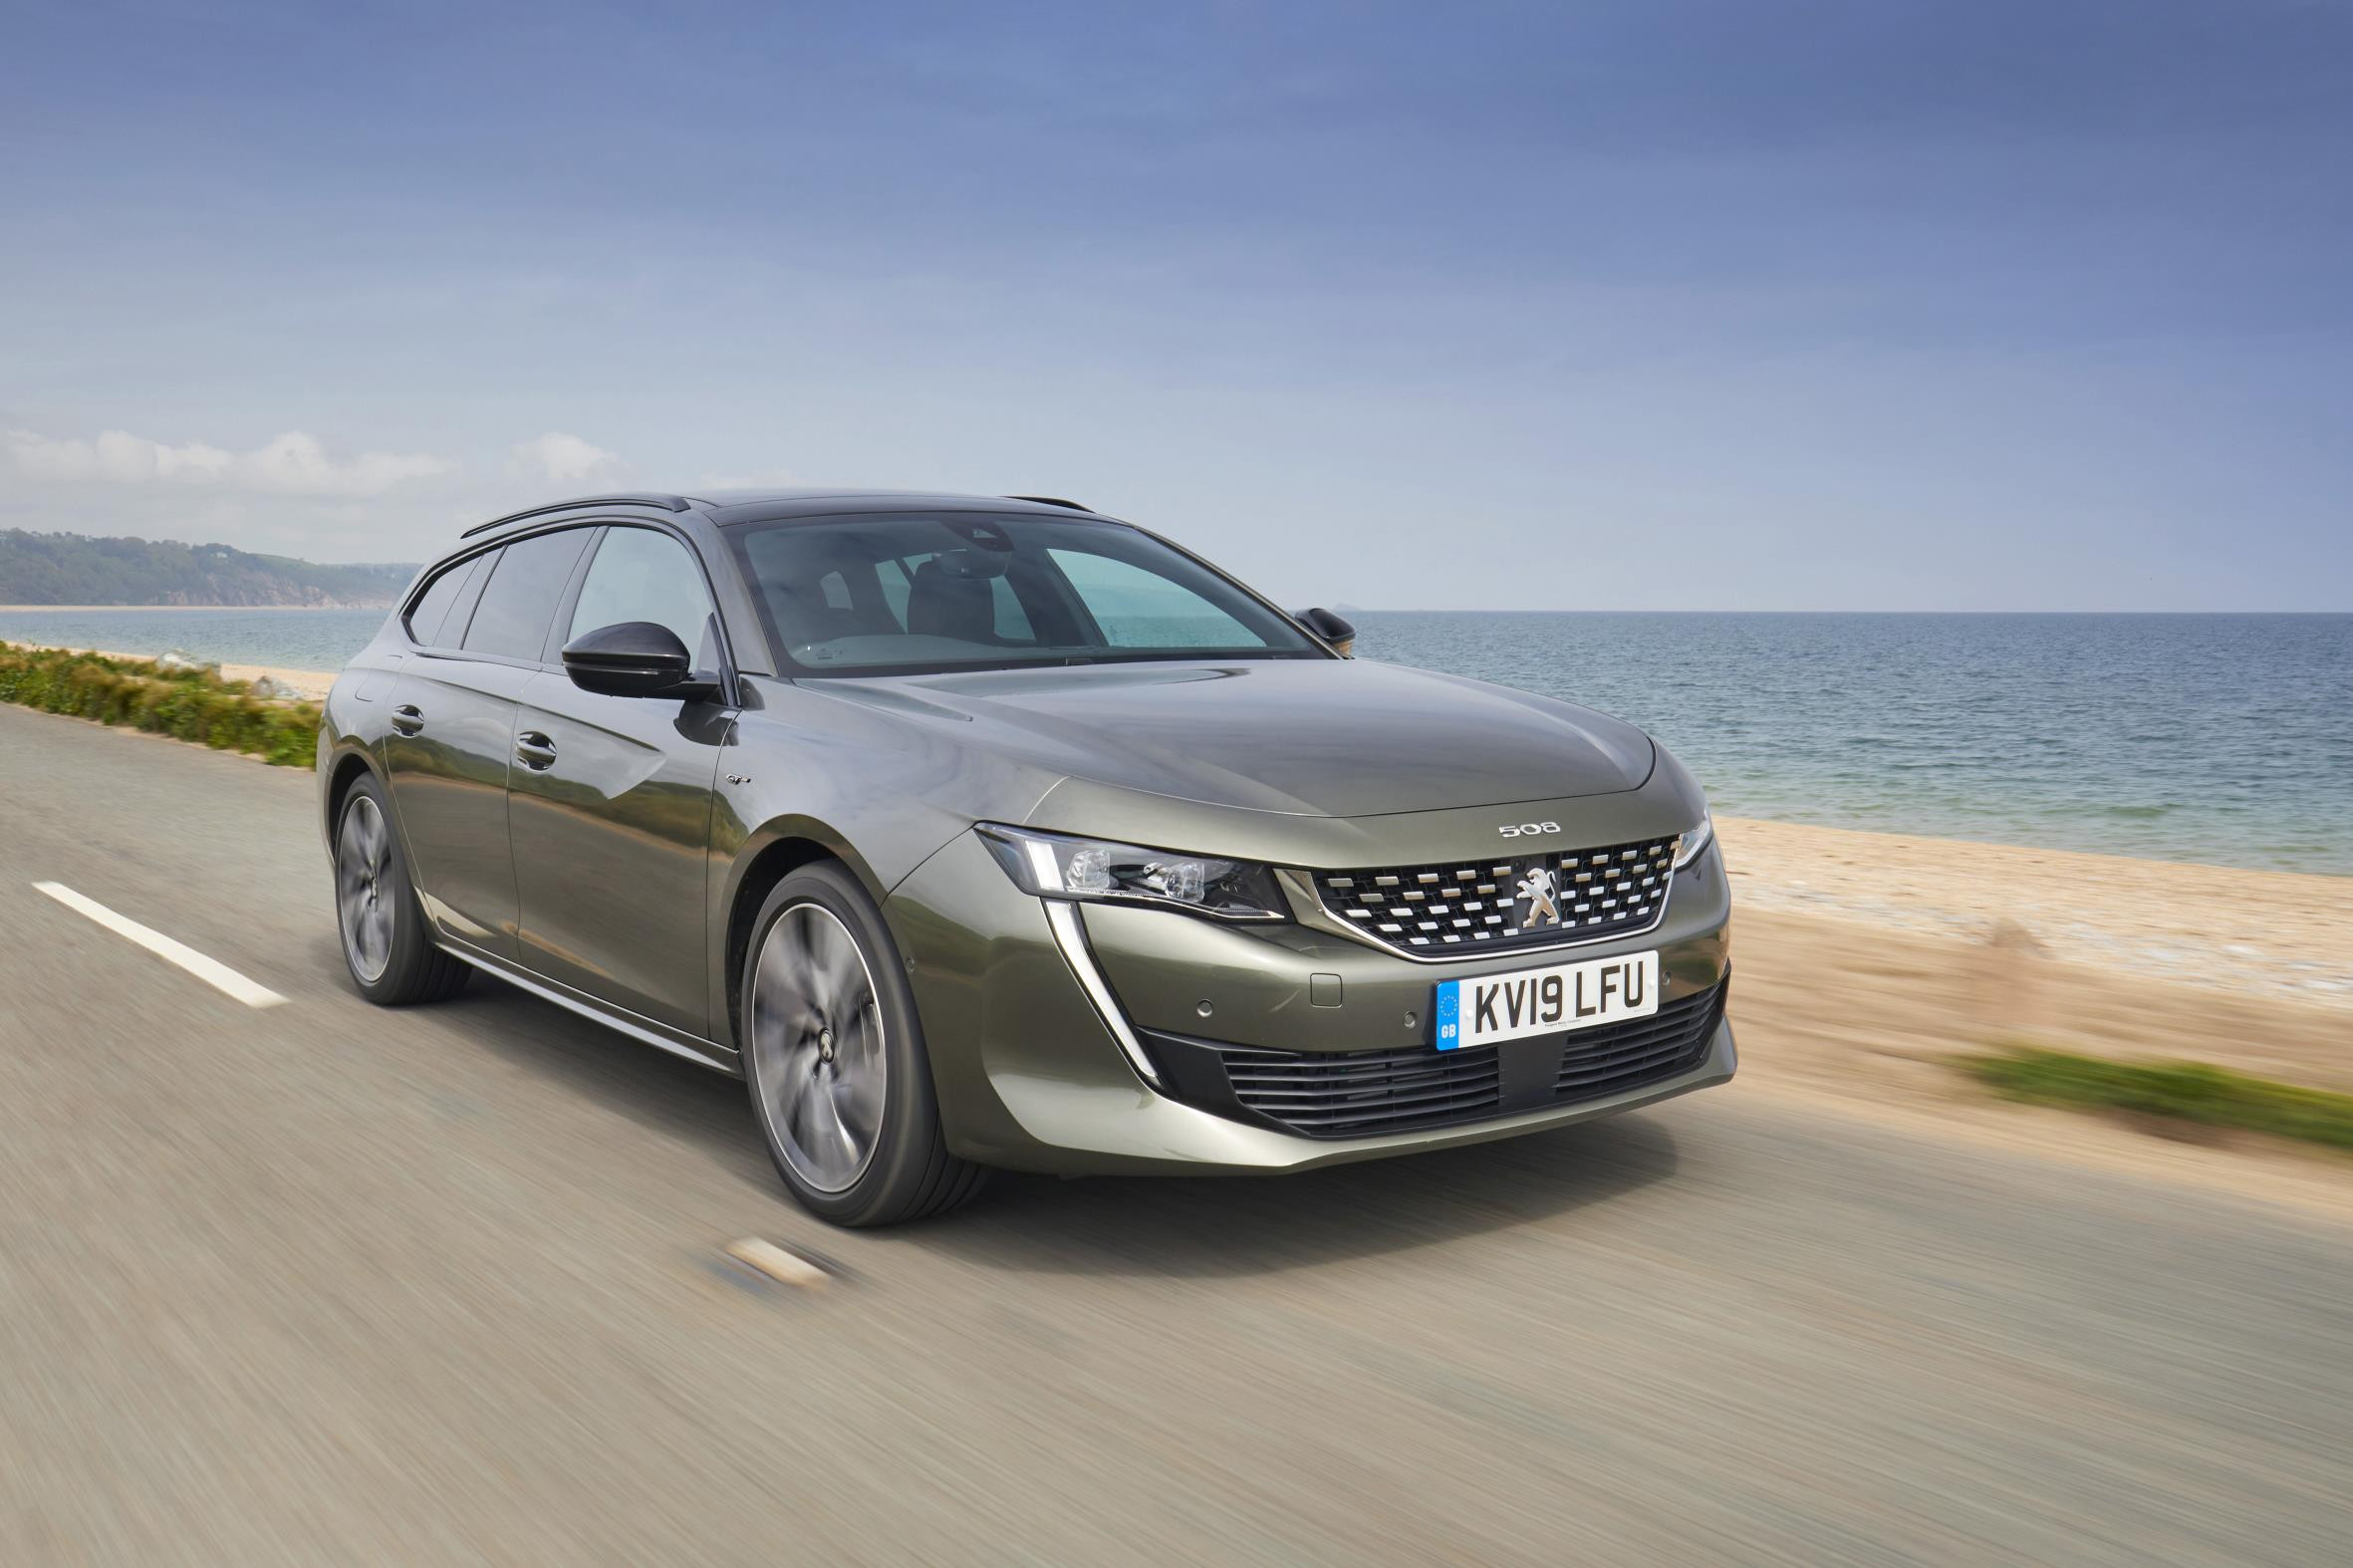 Metallic grey Peugeot 508 SW driving towards you on a coast road